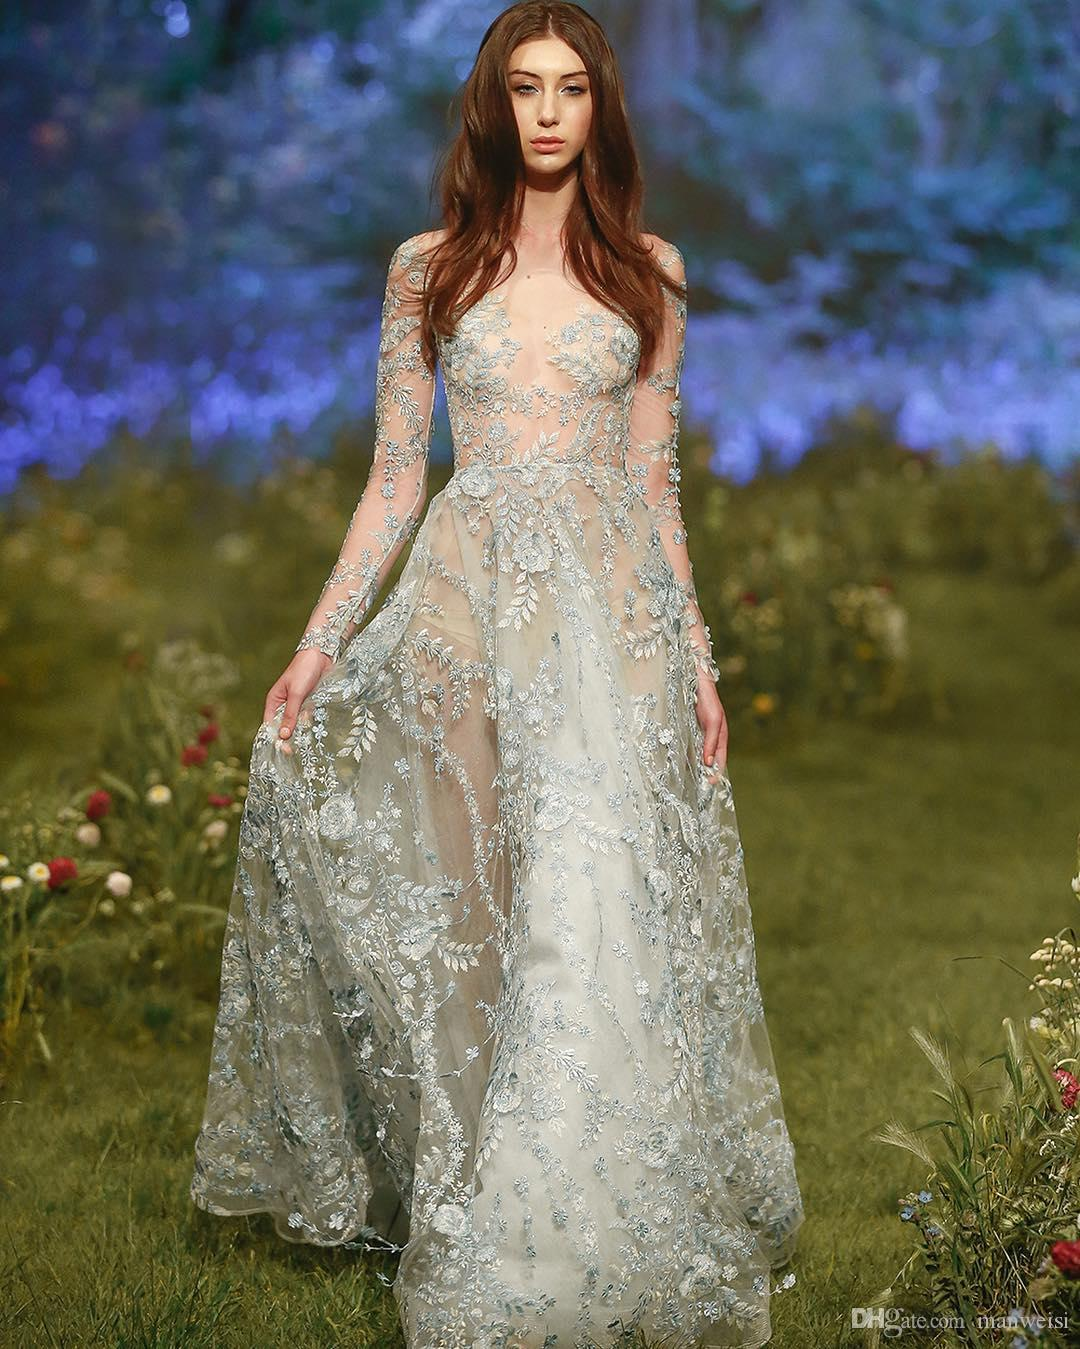 ce8cf955f Paolo Sebastian 2017 Sexy Prom Dresses Long Sleeve Embroidery Applique  Beads Evening Gowns Sheer Neck Illusion Bodice Formal Dress Blue Prom  Dresses Uk ...